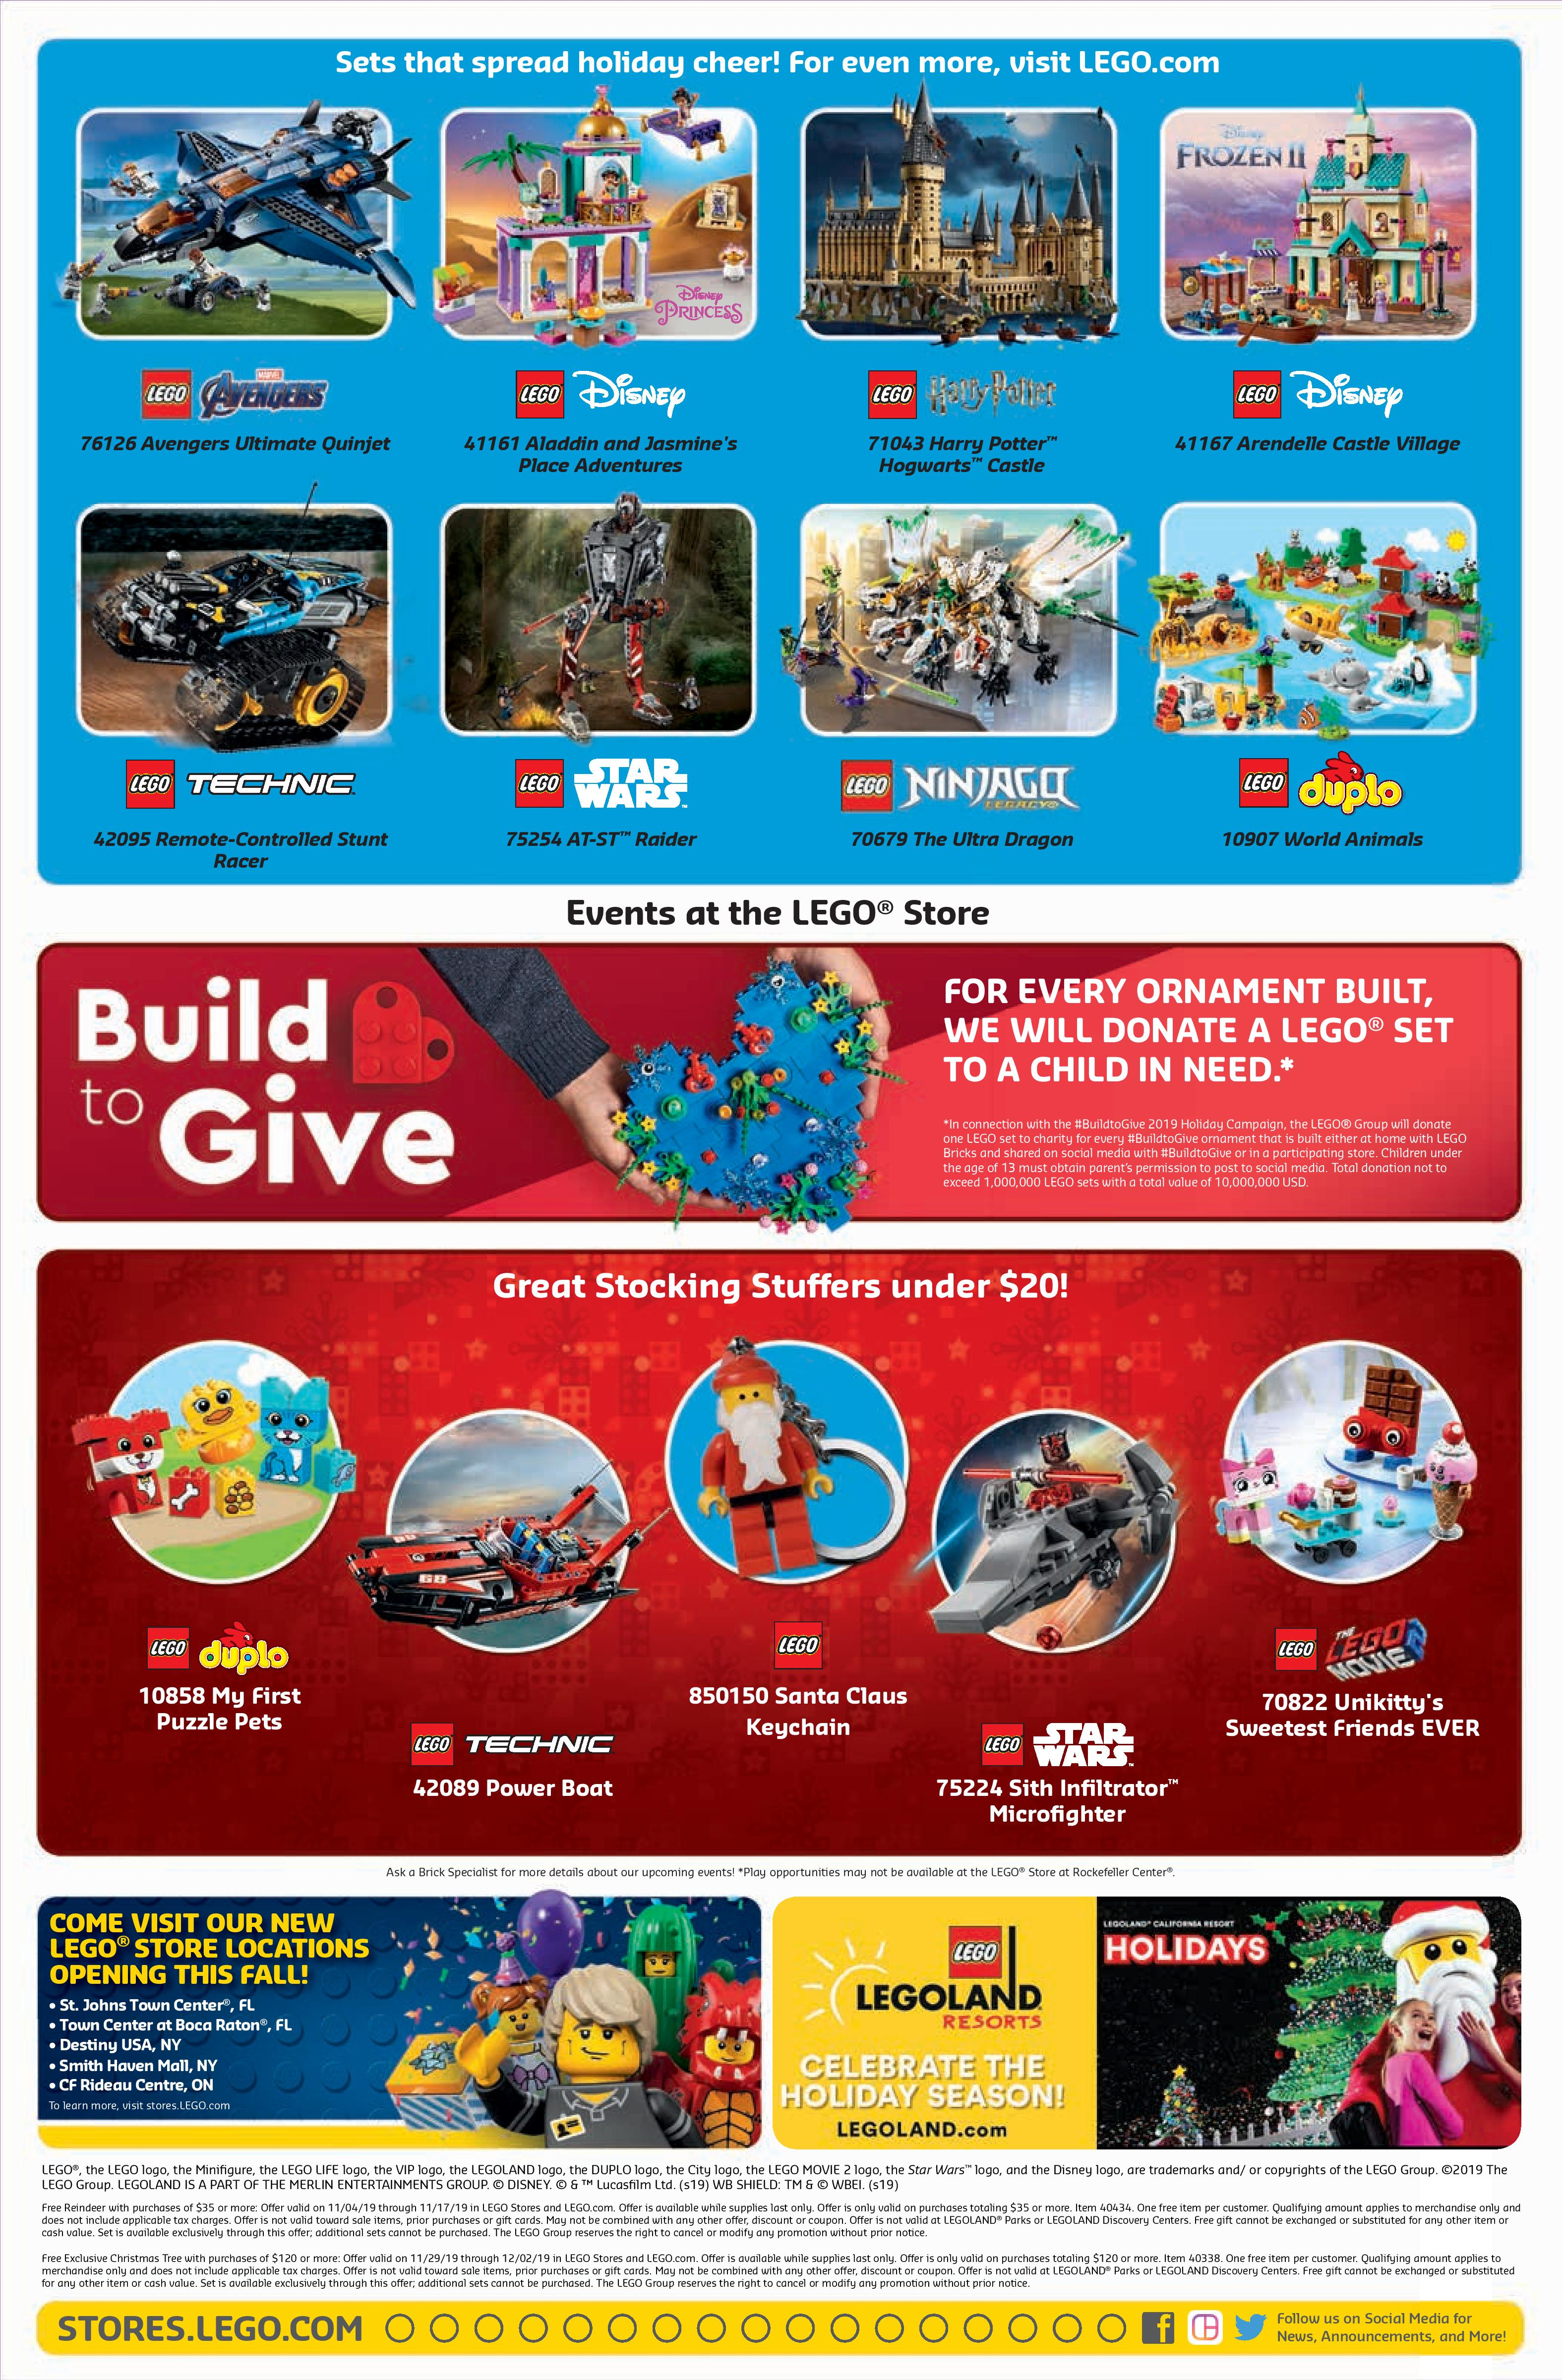 LEGO November 2019 Store Calendar Promotions & Events - The